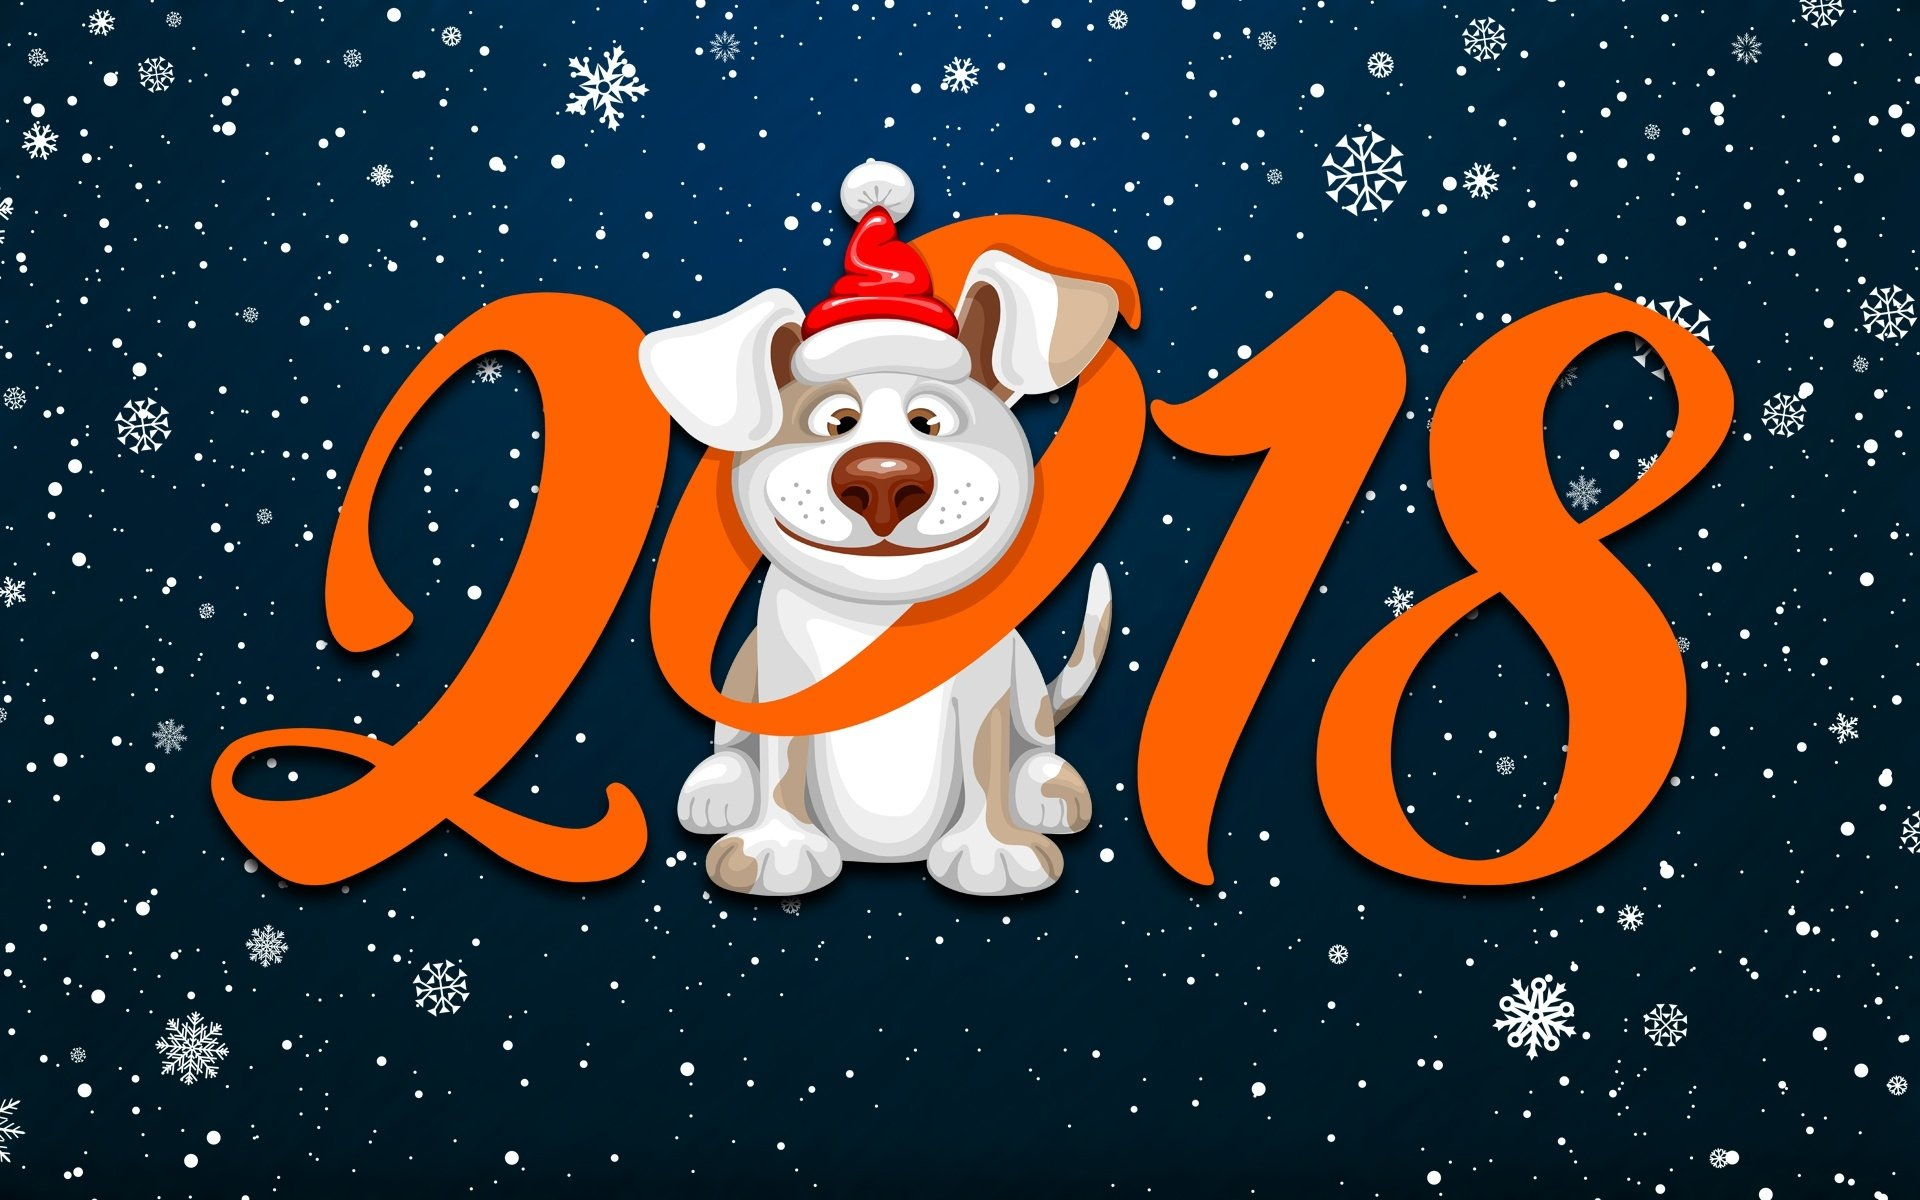 Happy New Year 2018 Latest Wallpapers